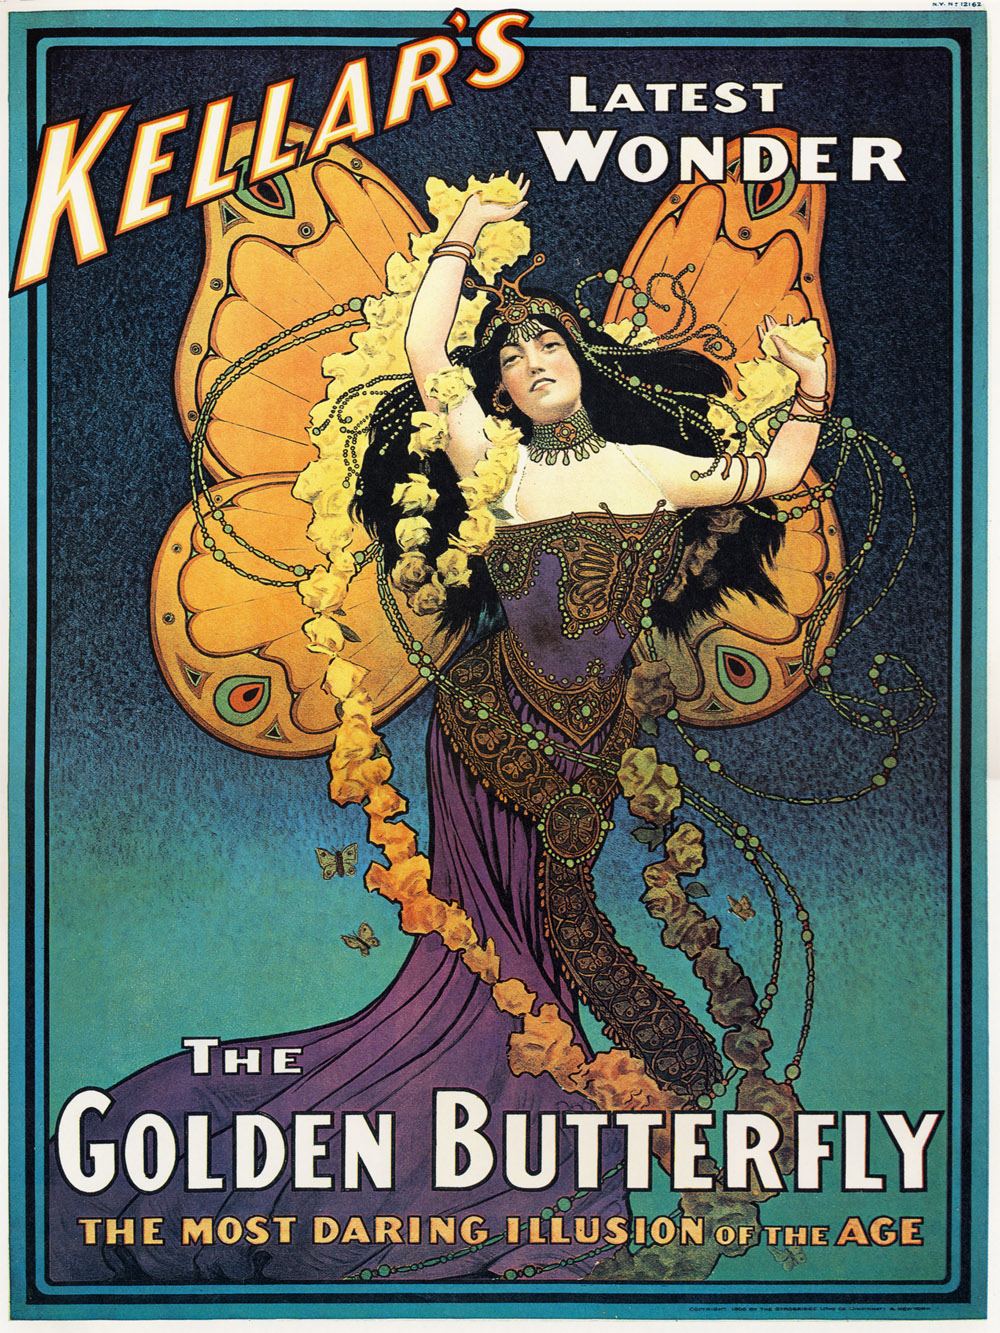 Keller Golden Butterfly.jpg